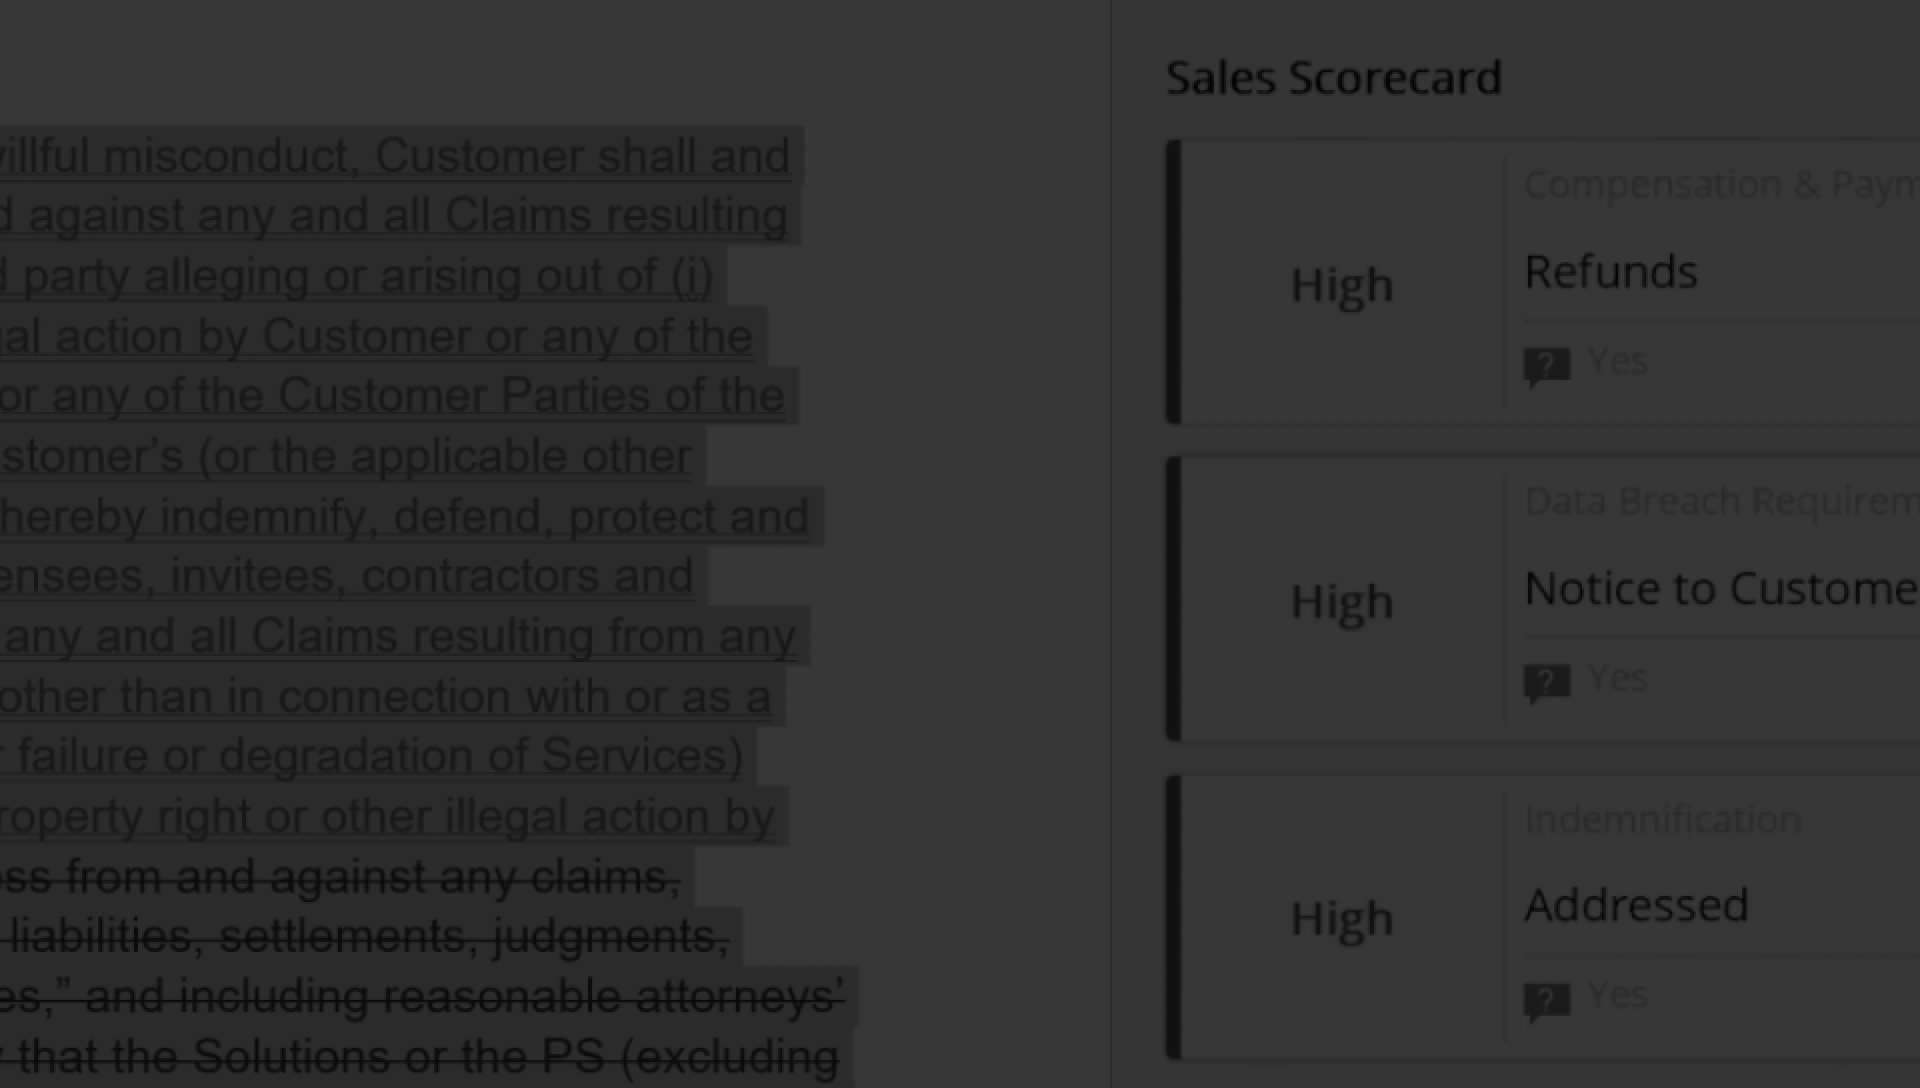 A sales scorecard being displayed while performing contract analytics with DocuSign Analyzer.